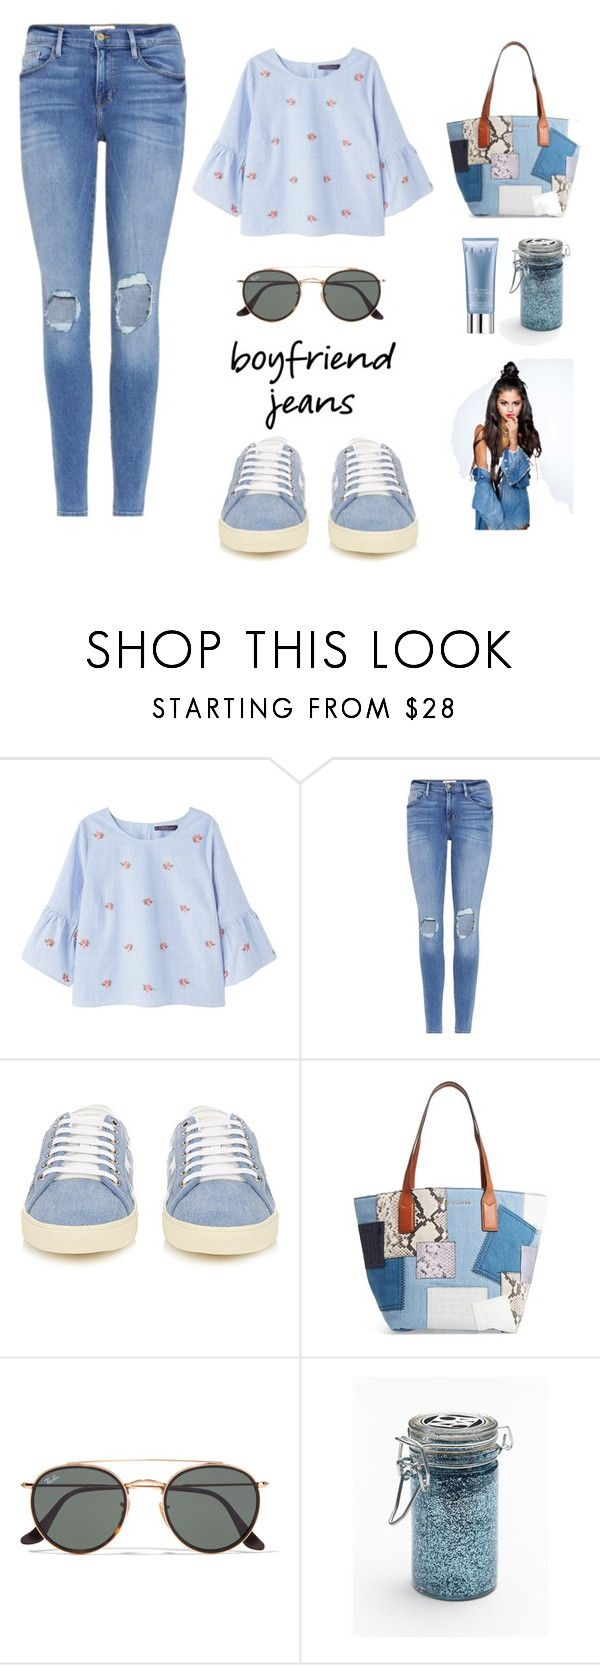 """Boyfriend Jeans"" by putrinaini on Polyvore featuring MANGO, Frame, Yves Saint Laurent, Marc Jacobs, Ray-Ban, Major Moonshine and Orlane"